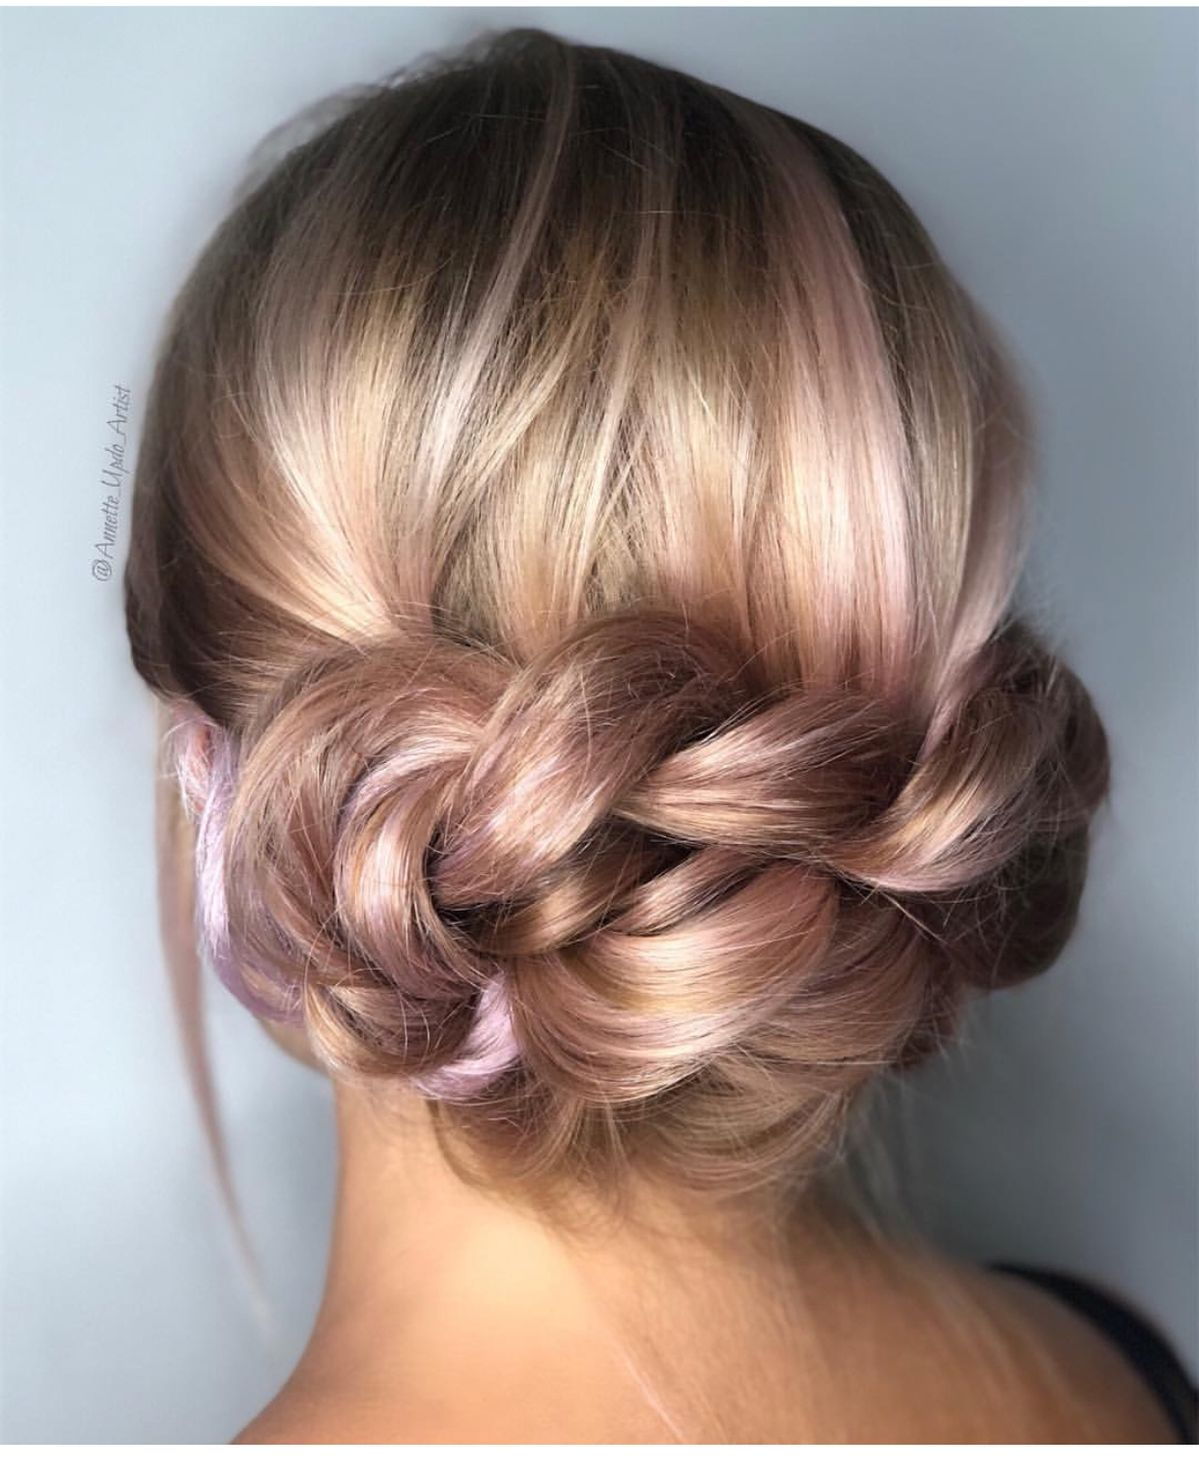 "FEATURING: @annette_updo_artist <a class=""pintag"" href=""/explore/updos/"" title=""#updos explore Pinterest"">#updos</a> <a class=""pintag"" href=""/explore/buns/"" title=""#buns explore Pinterest"">#buns</a> <a class=""pintag"" href=""/explore/MzManerz/"" title=""#MzManerz explore Pinterest"">#MzManerz</a> <a class=""pintag"" href=""/explore/MzManerzHairTeam/"" title=""#MzManerzHairTeam explore Pinterest"">#MzManerzHairTeam</a> 